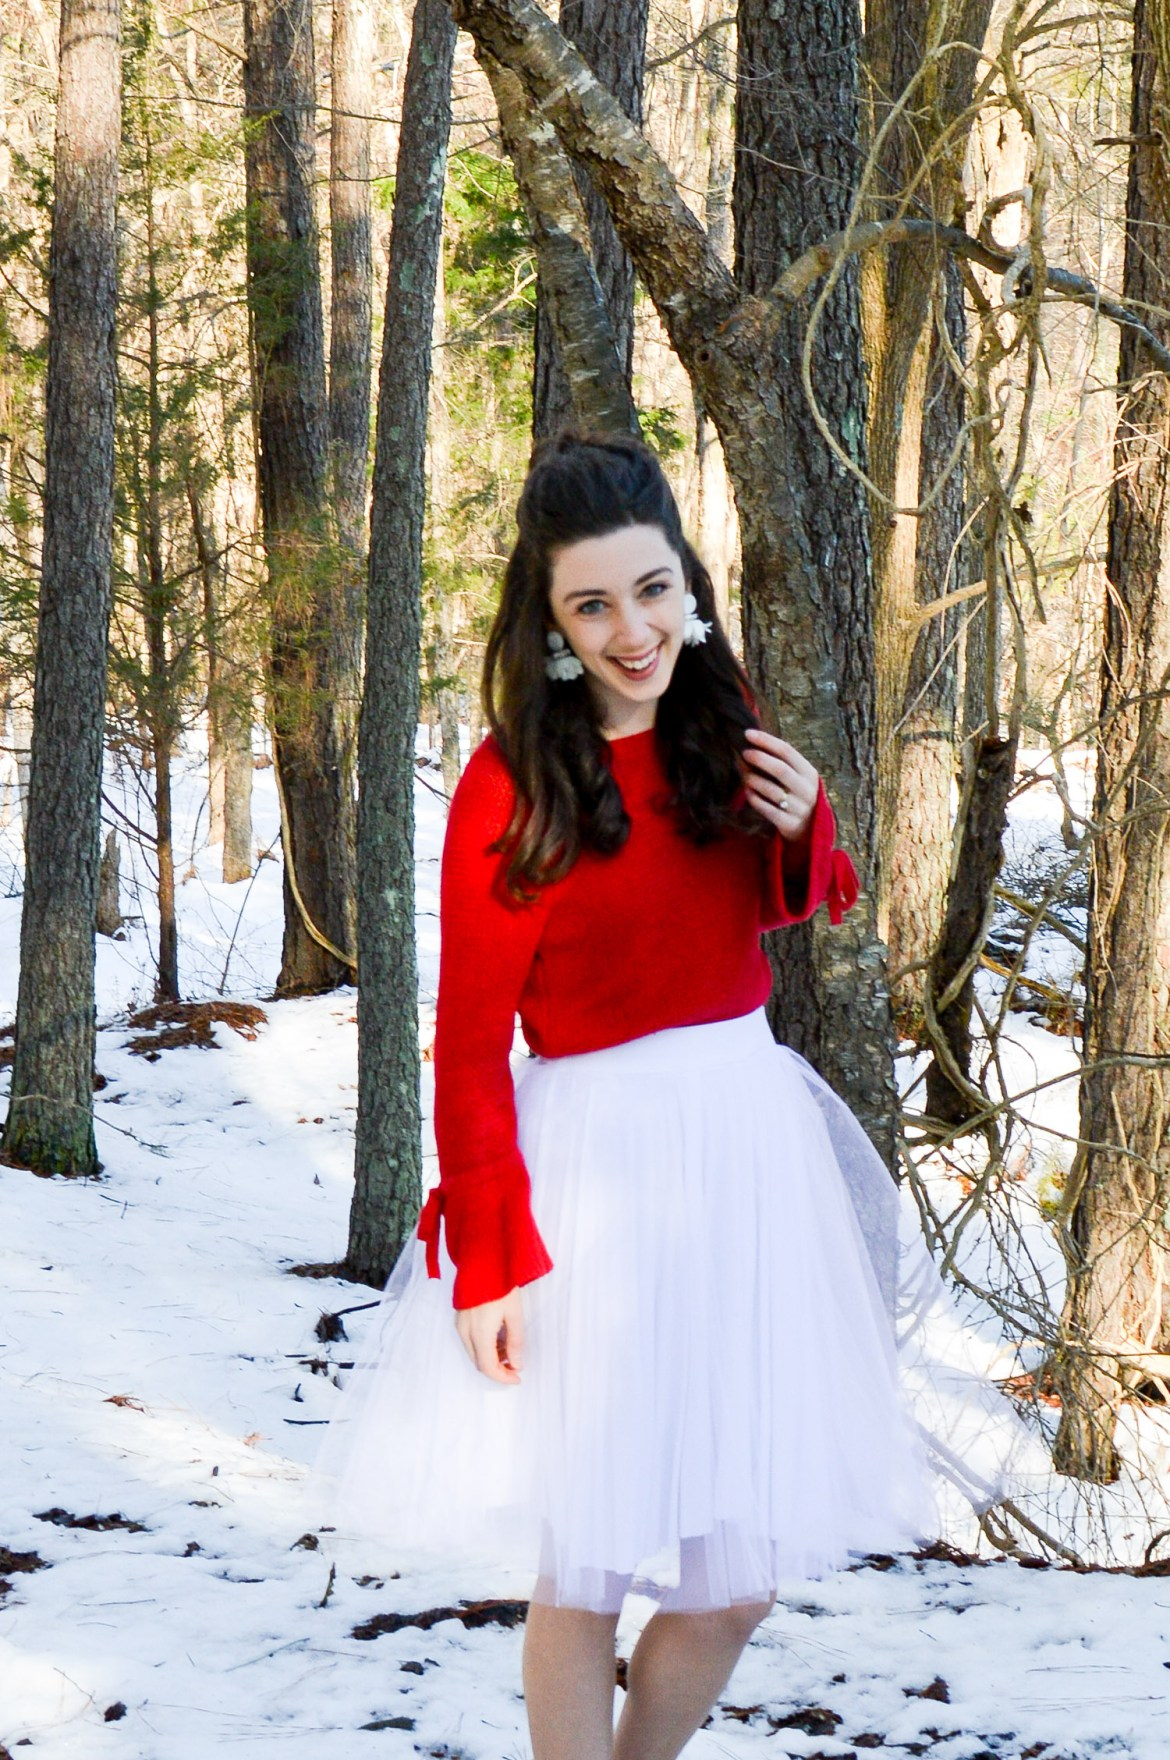 Tulle skirts in the snow // My tulle skirt may be my favorite item in my closet!